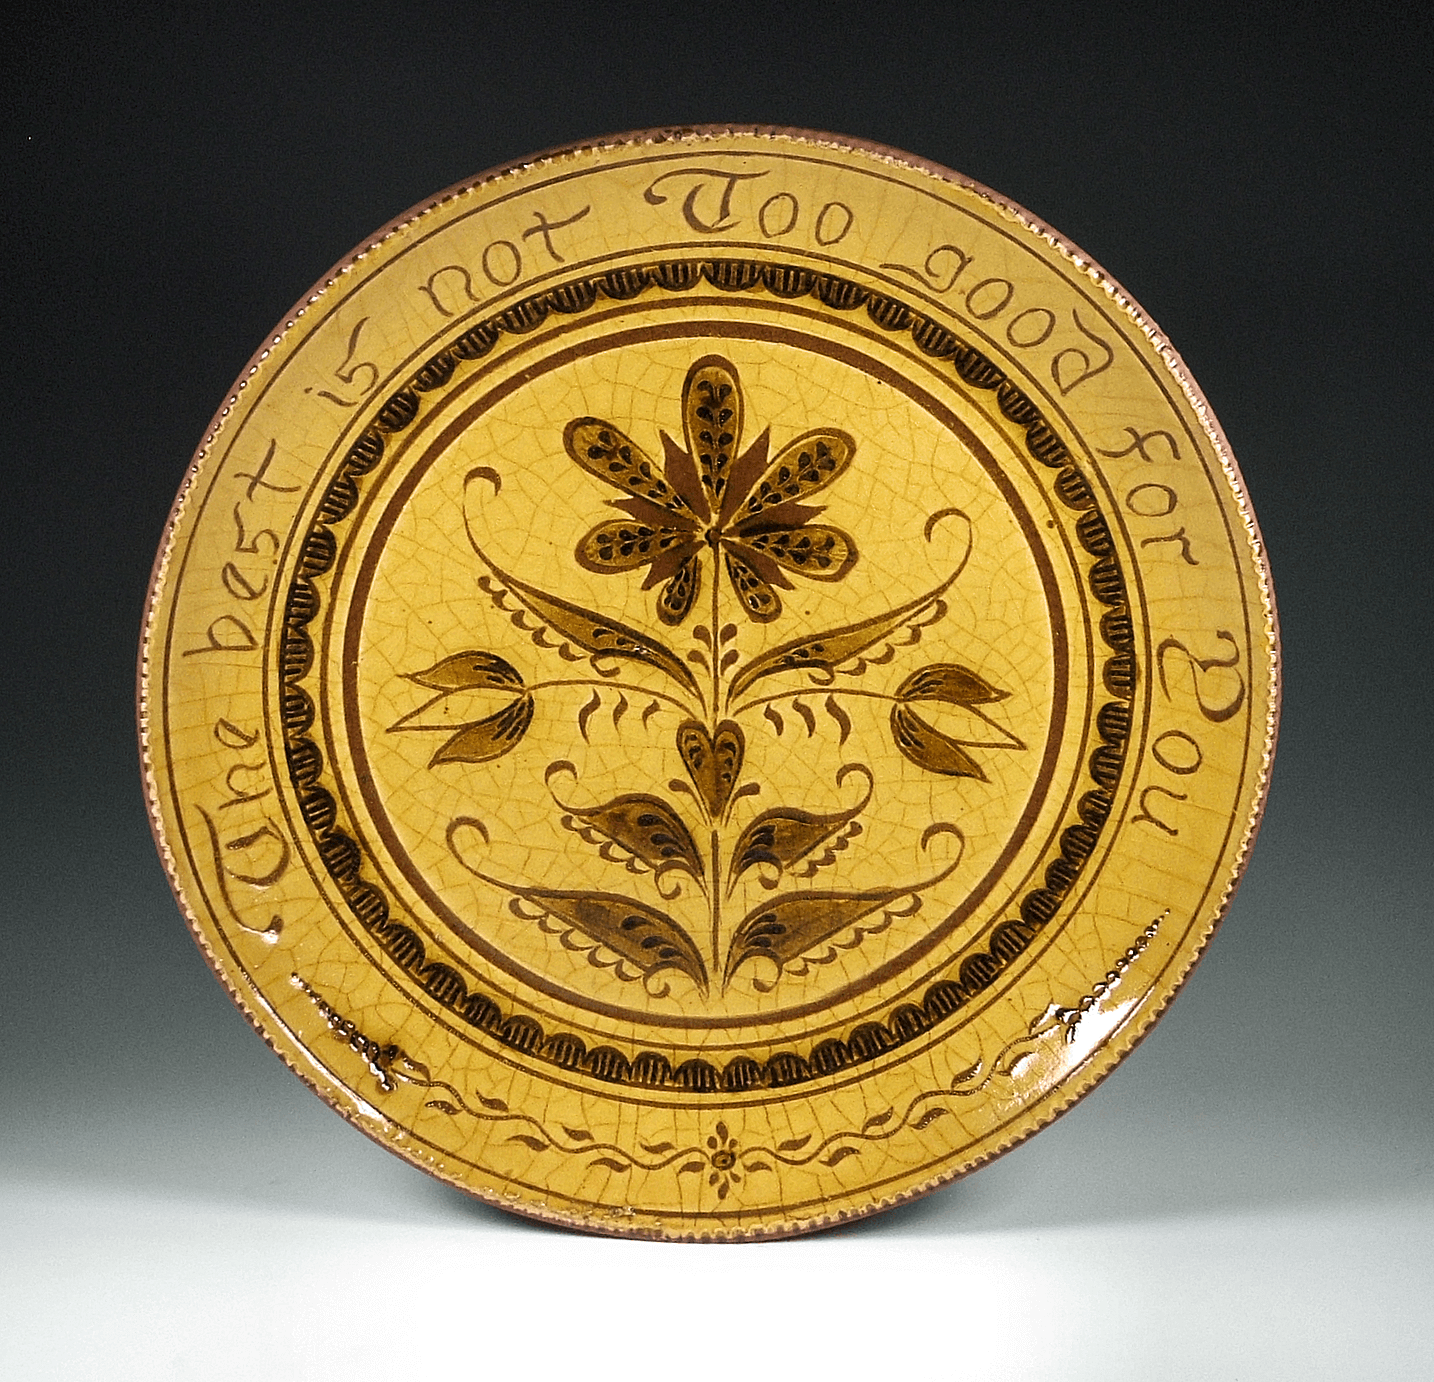 Round Plate, Sgraffito, The Best is Not Too Good for You